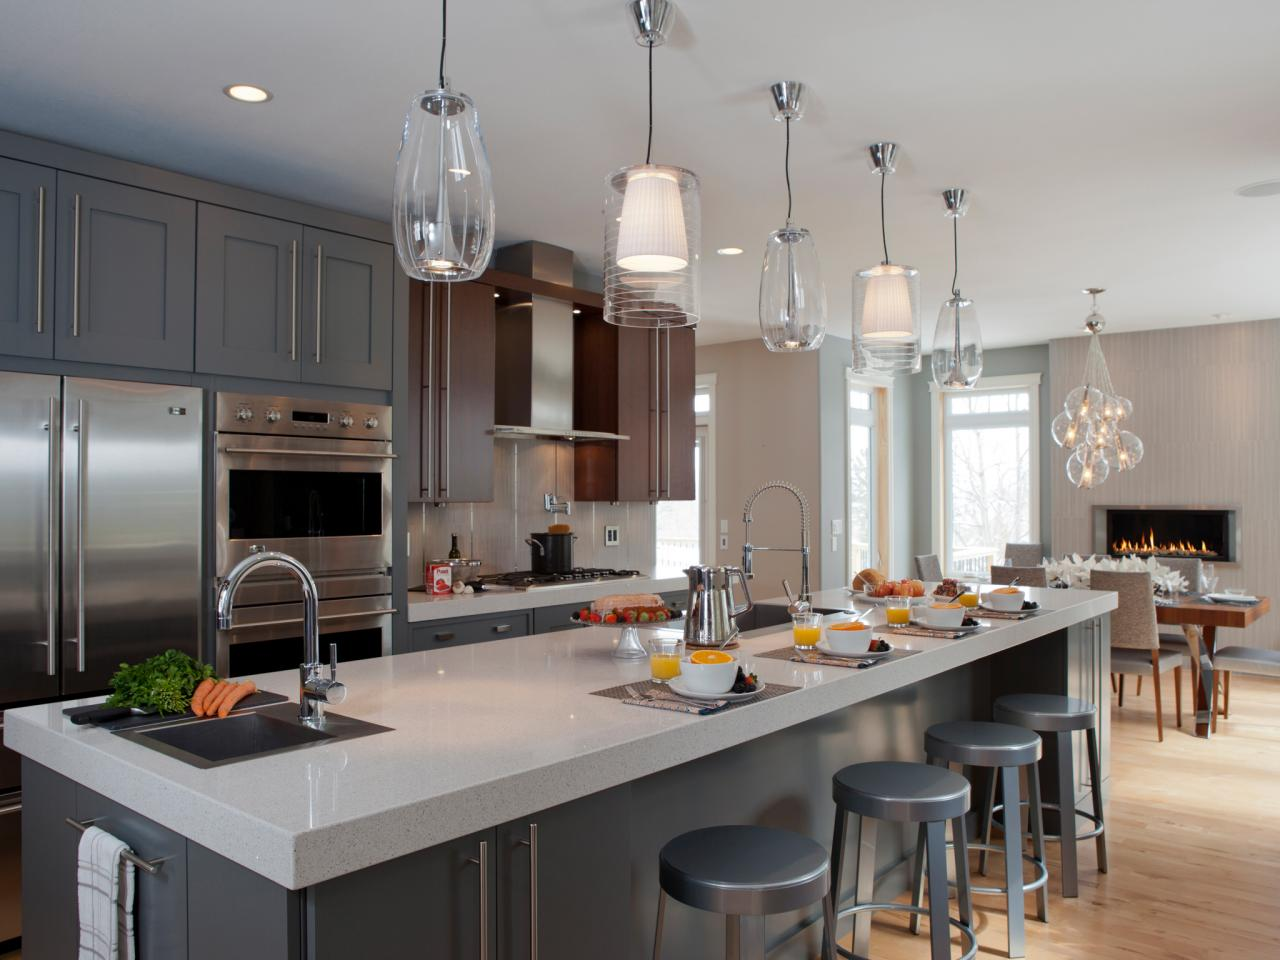 Photos hgtv Modern kitchen pendant lighting ideas